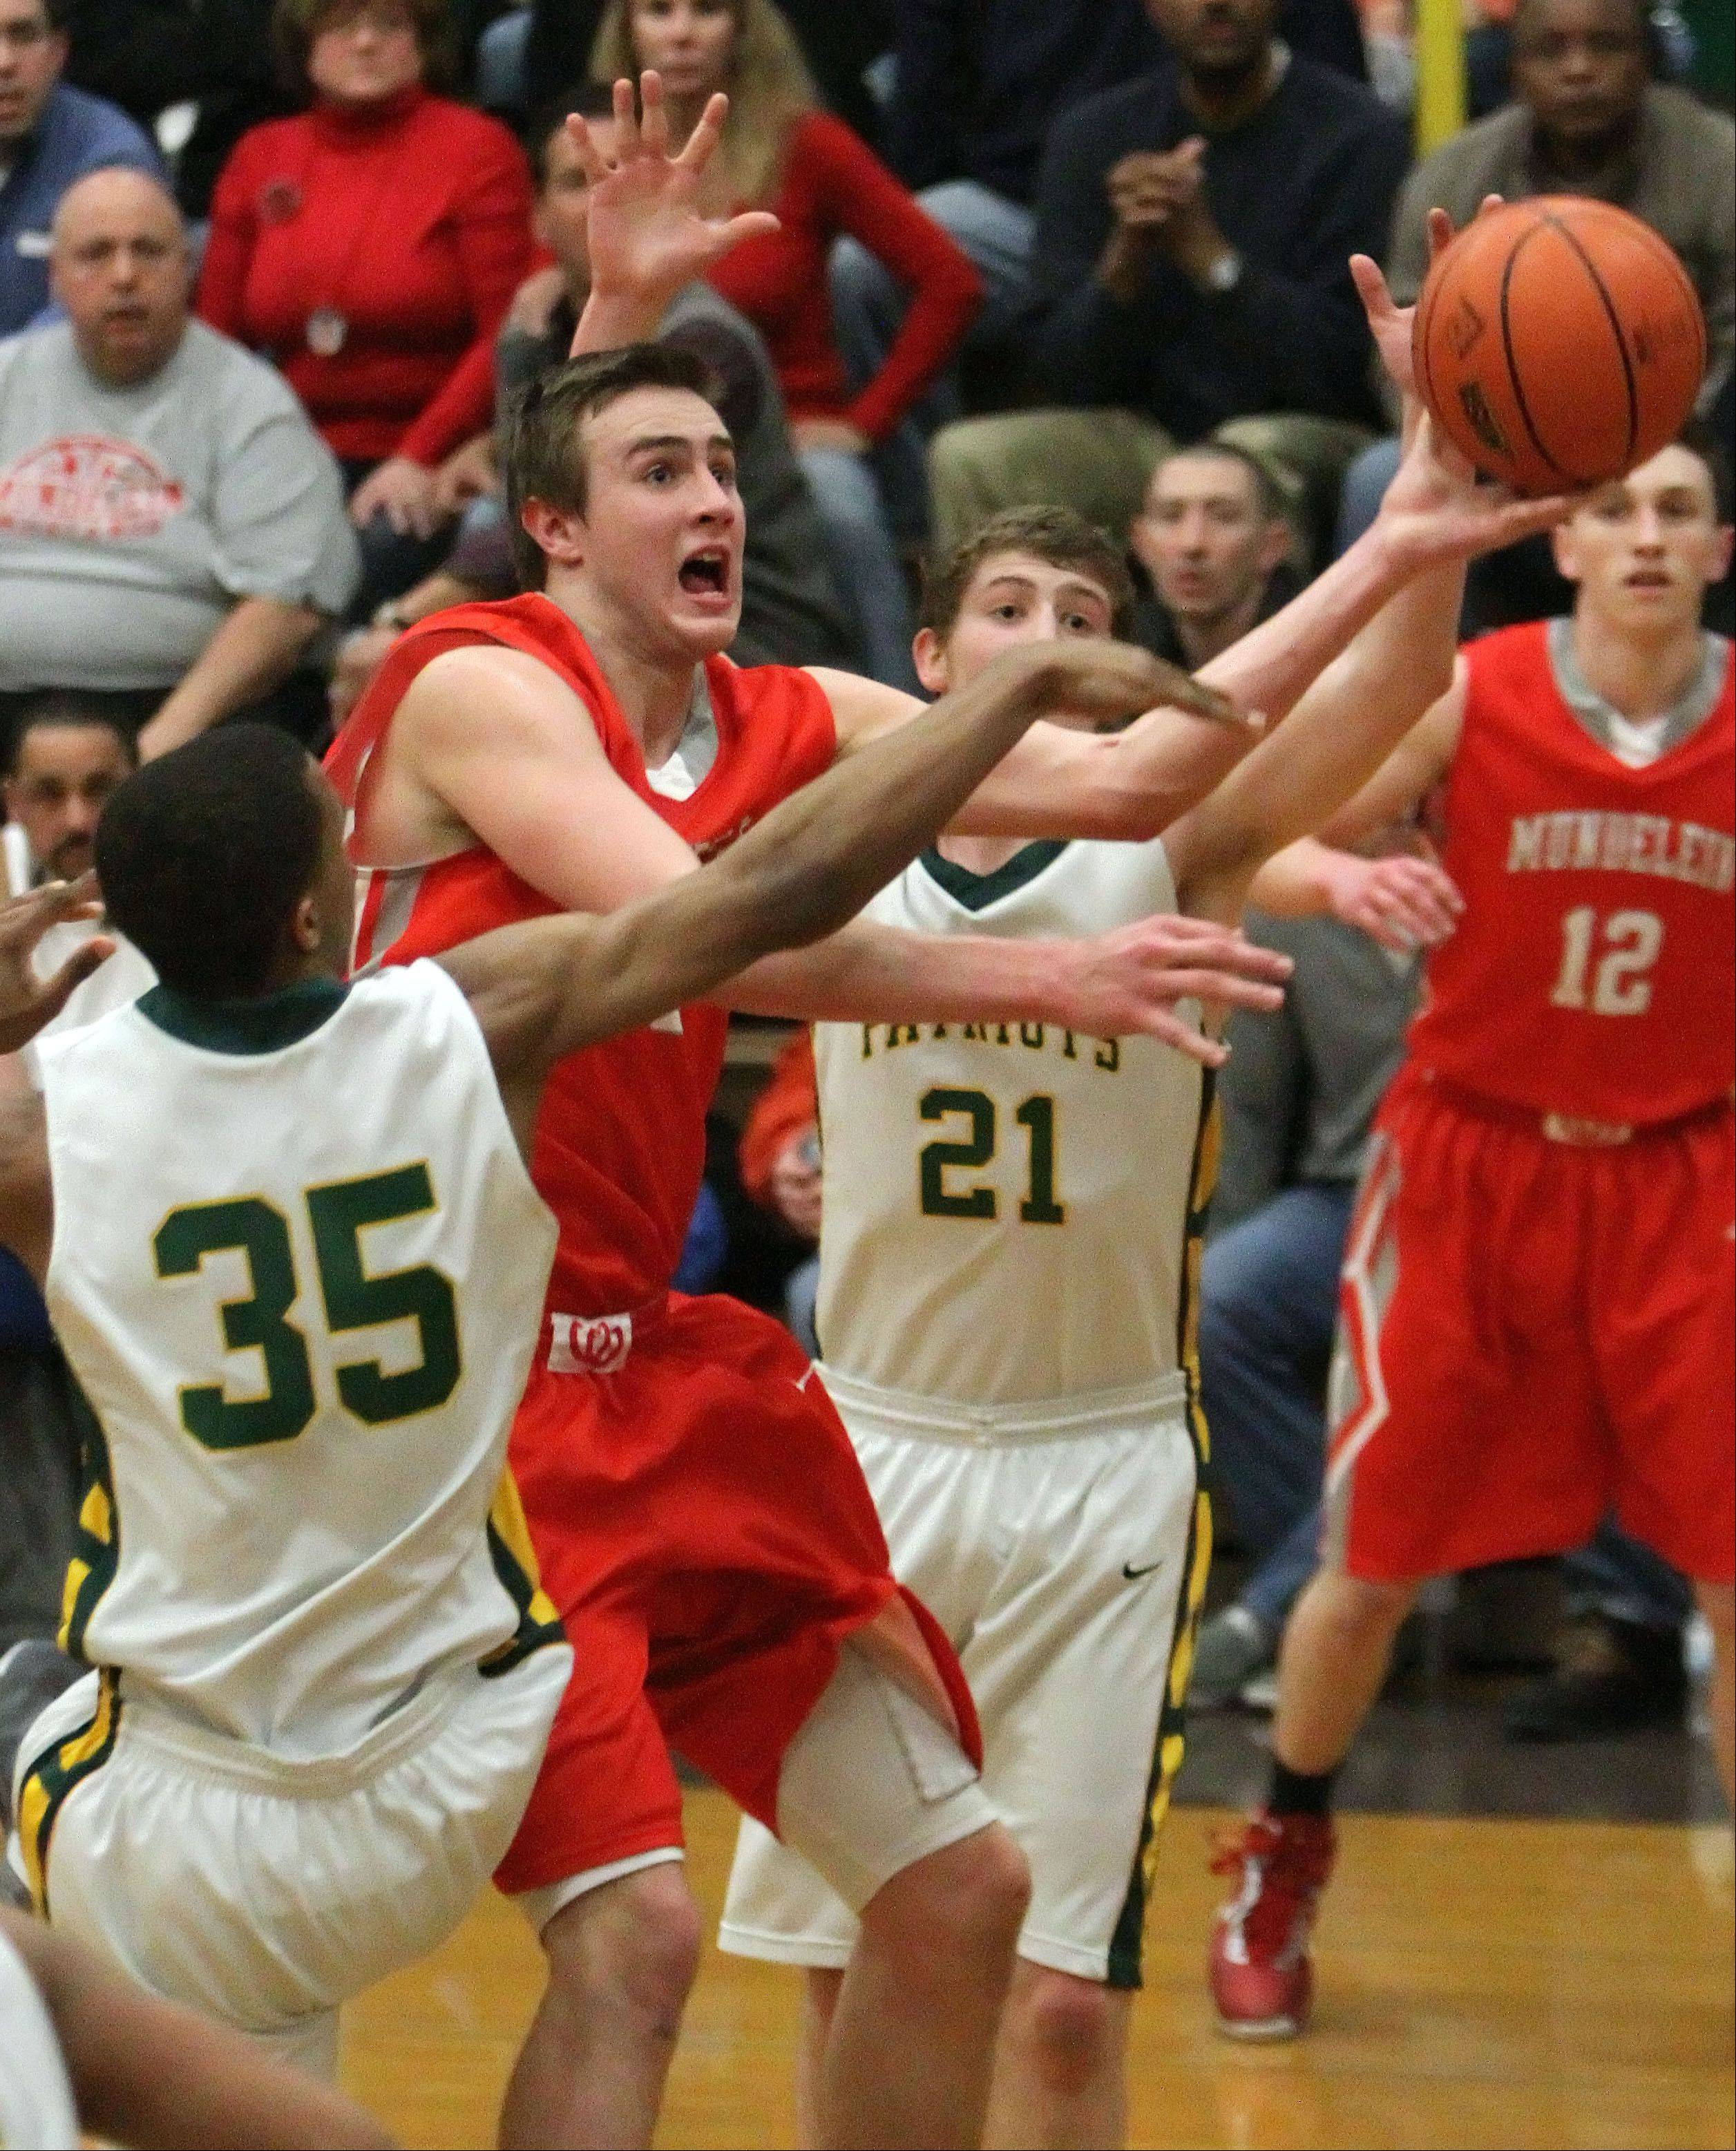 Mundelein's Sean O'Brien, right, drives past Stevenson's Connor Cashaw.